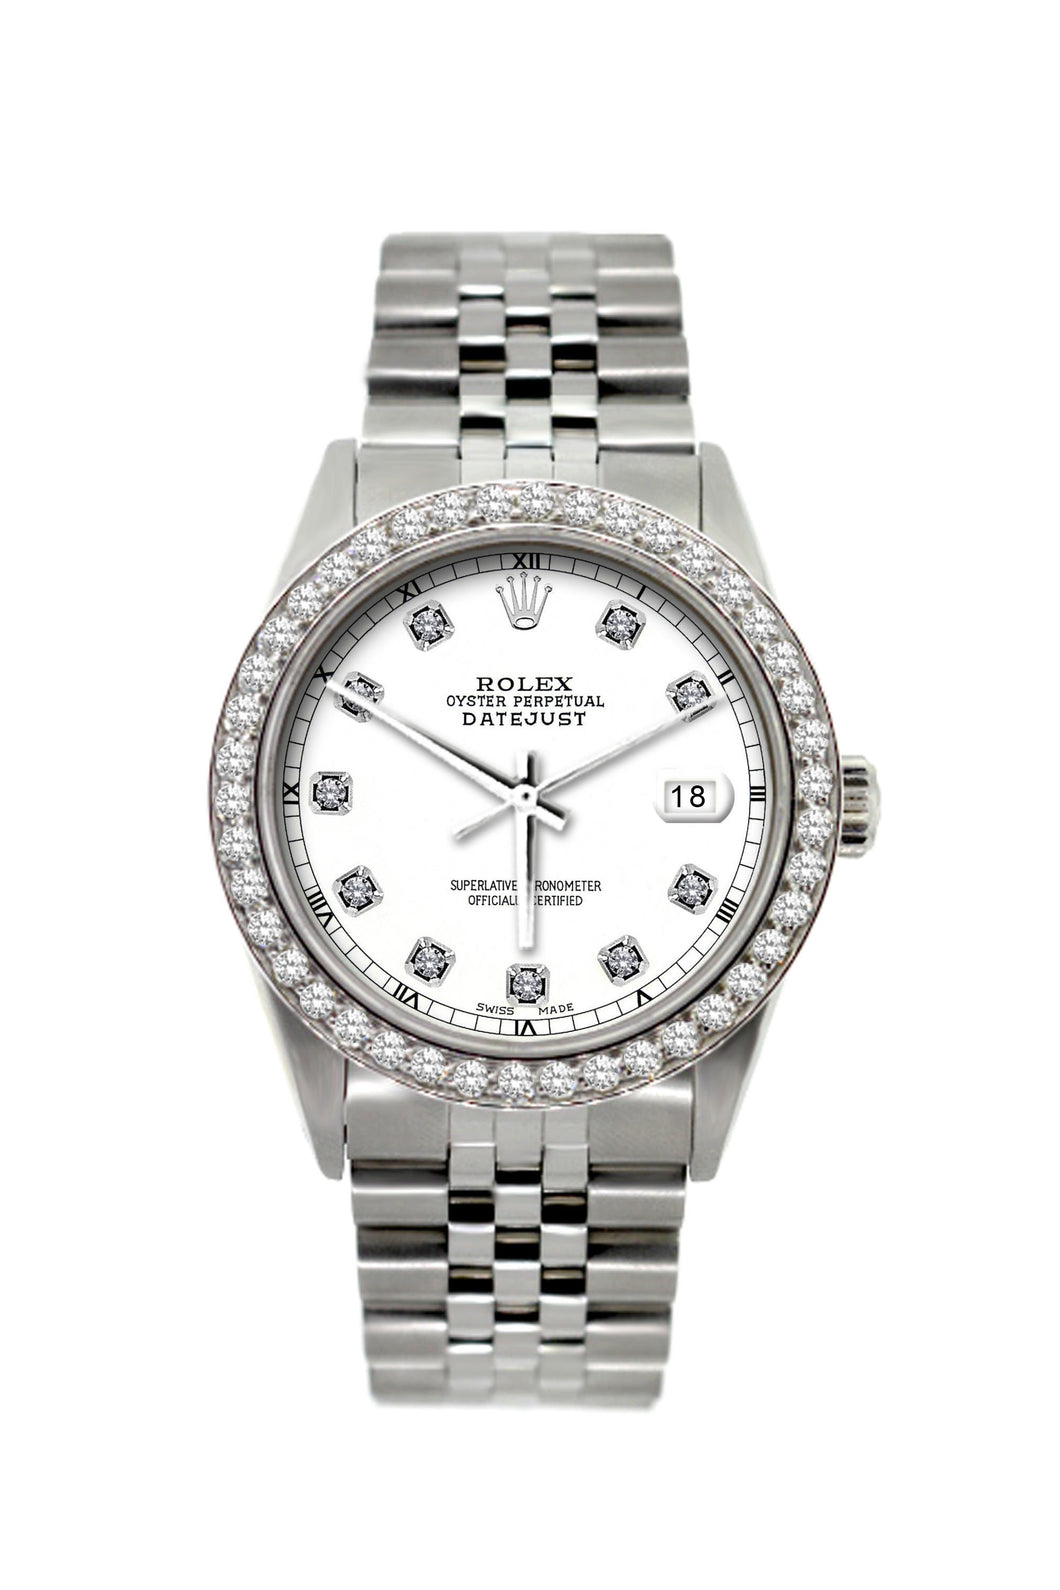 Rolex Datejust 36mm Stainless Steel White Dial w/ Diamond Bezel